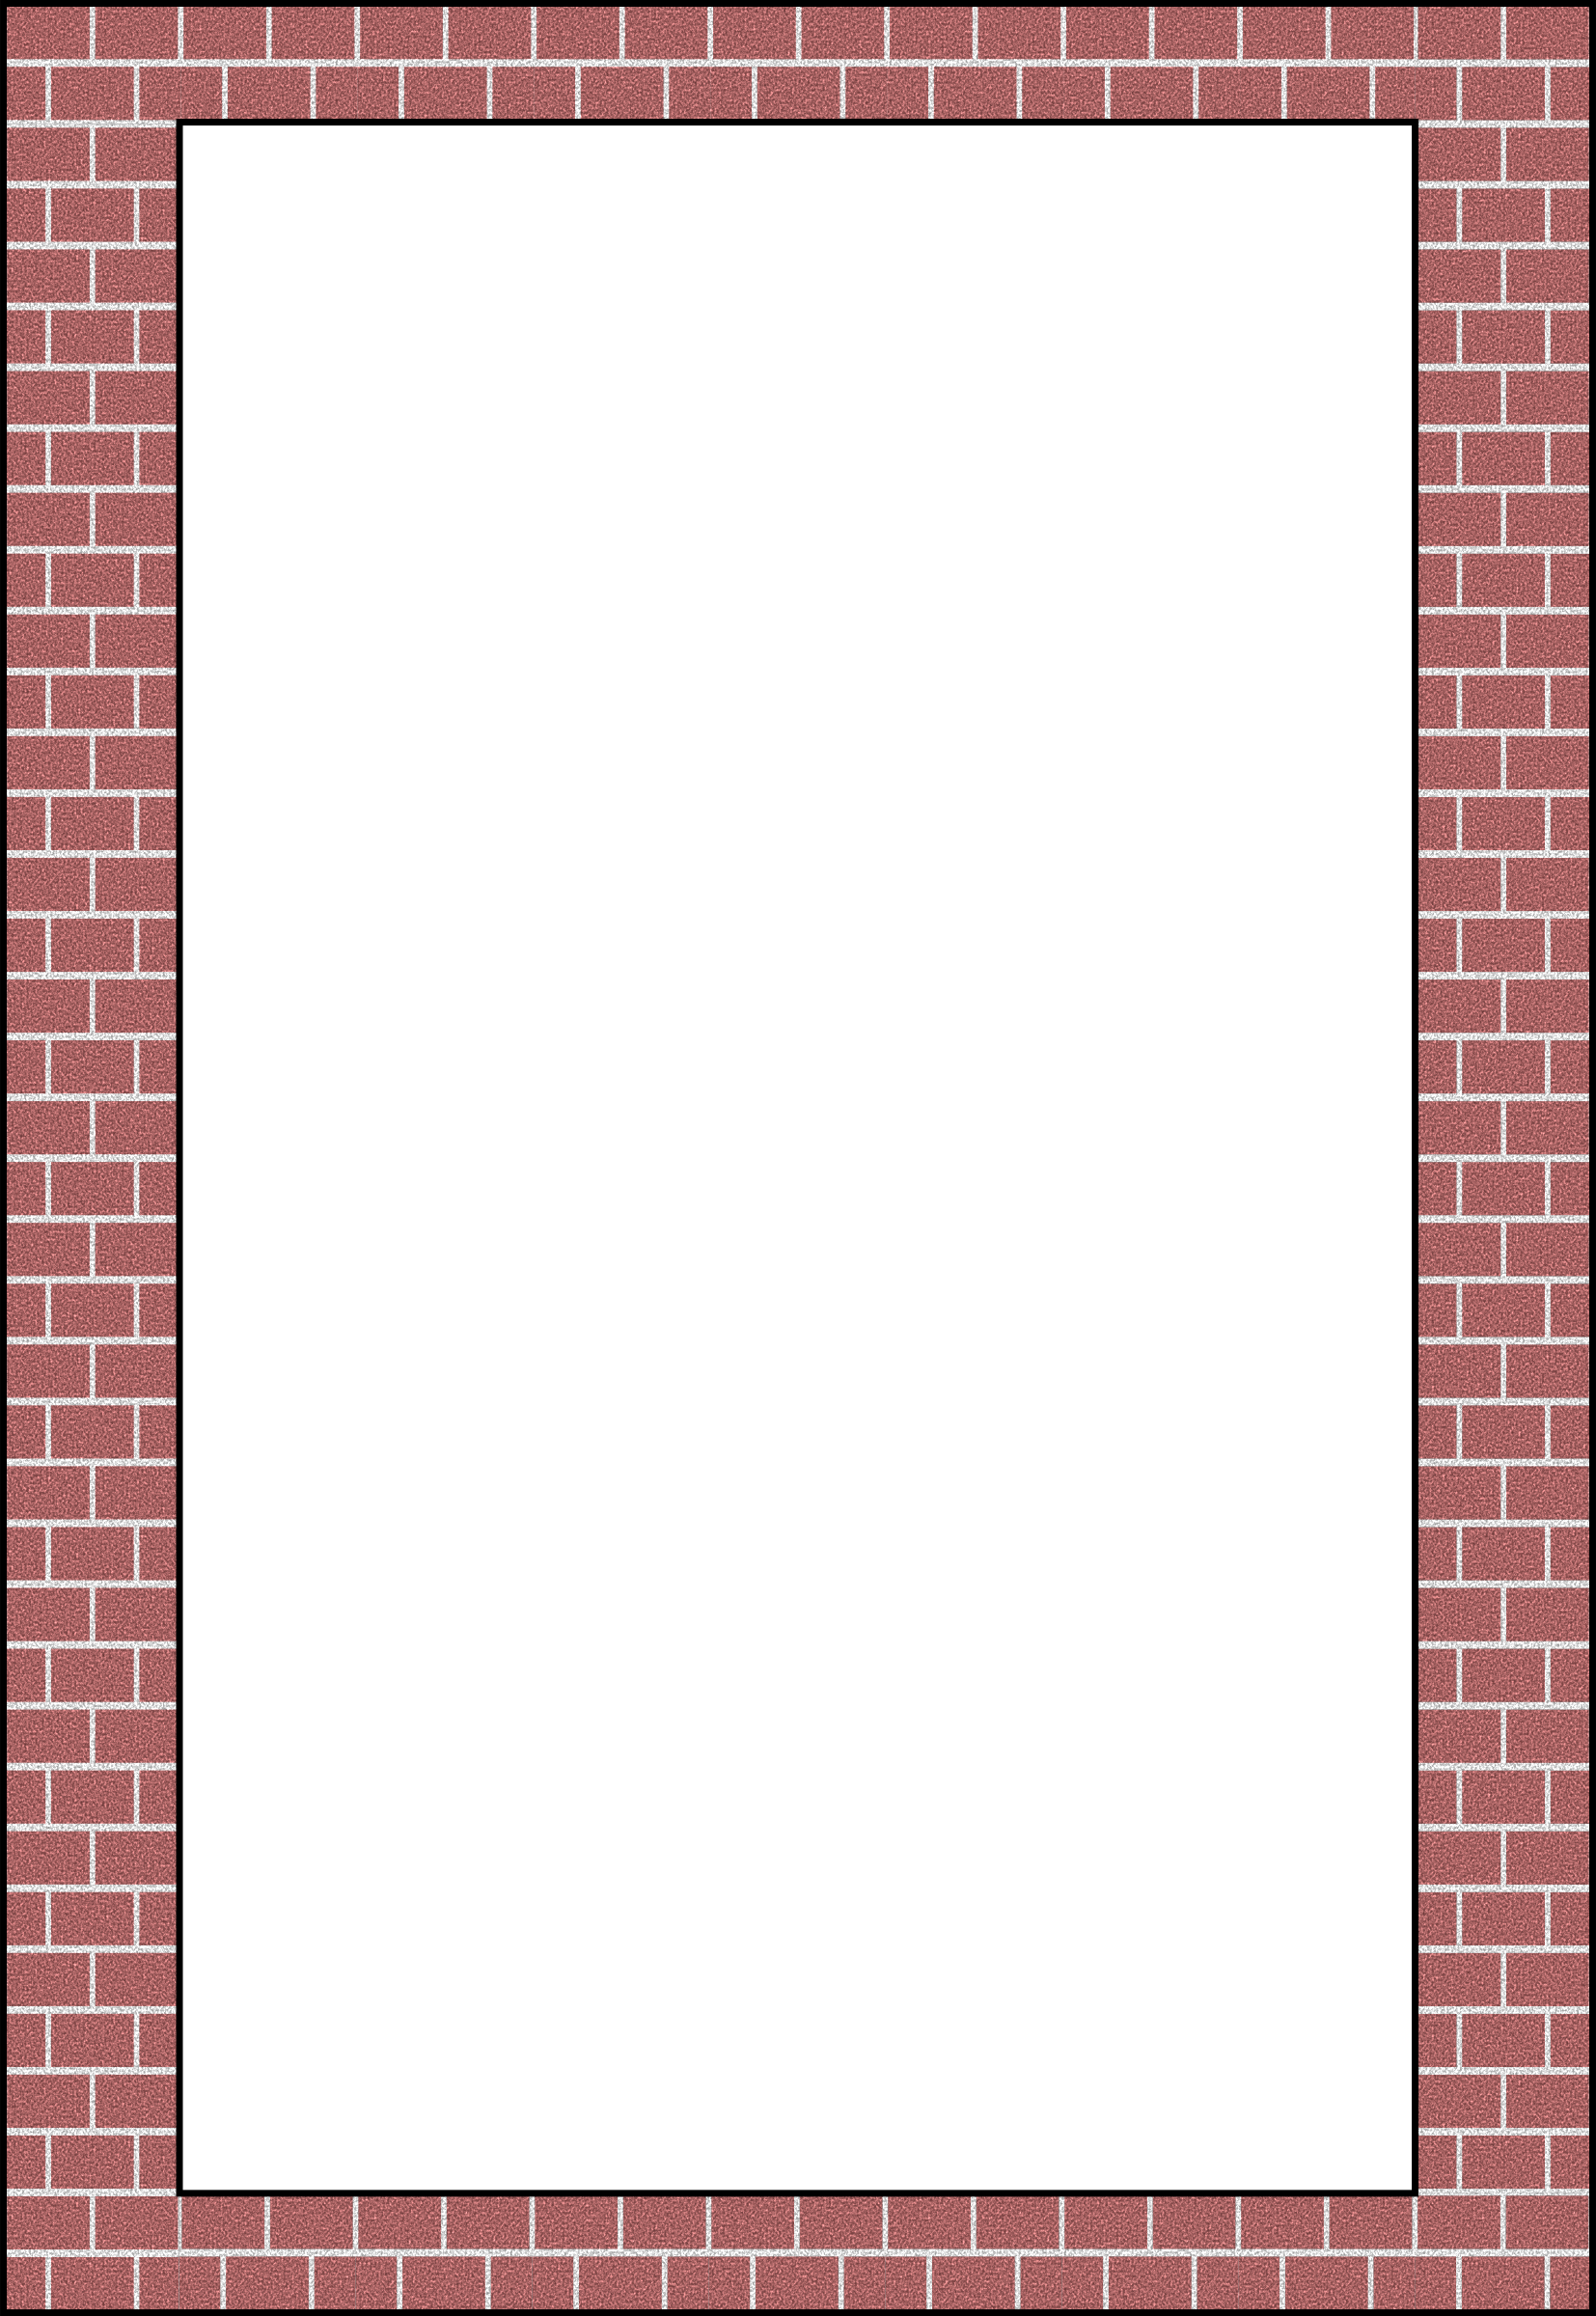 Old brick wall as a frame 01 stock photo image 18377500 - Filename Brick_border__arvin61r58 Png